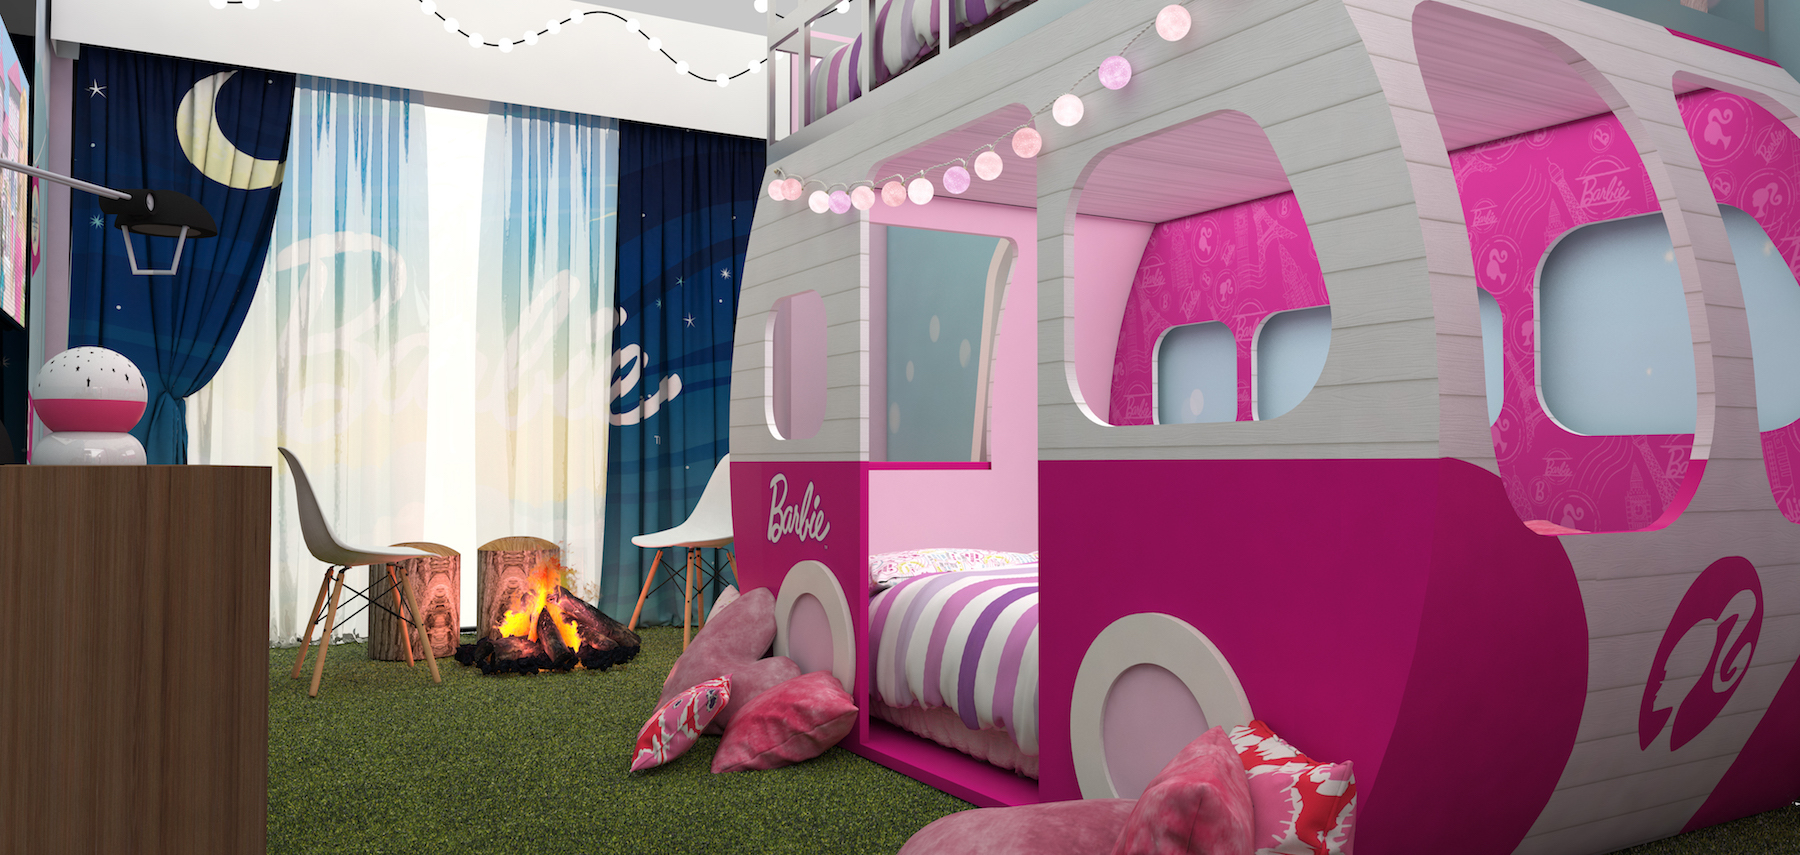 There's a Barbie Hotel Room in Mexico City